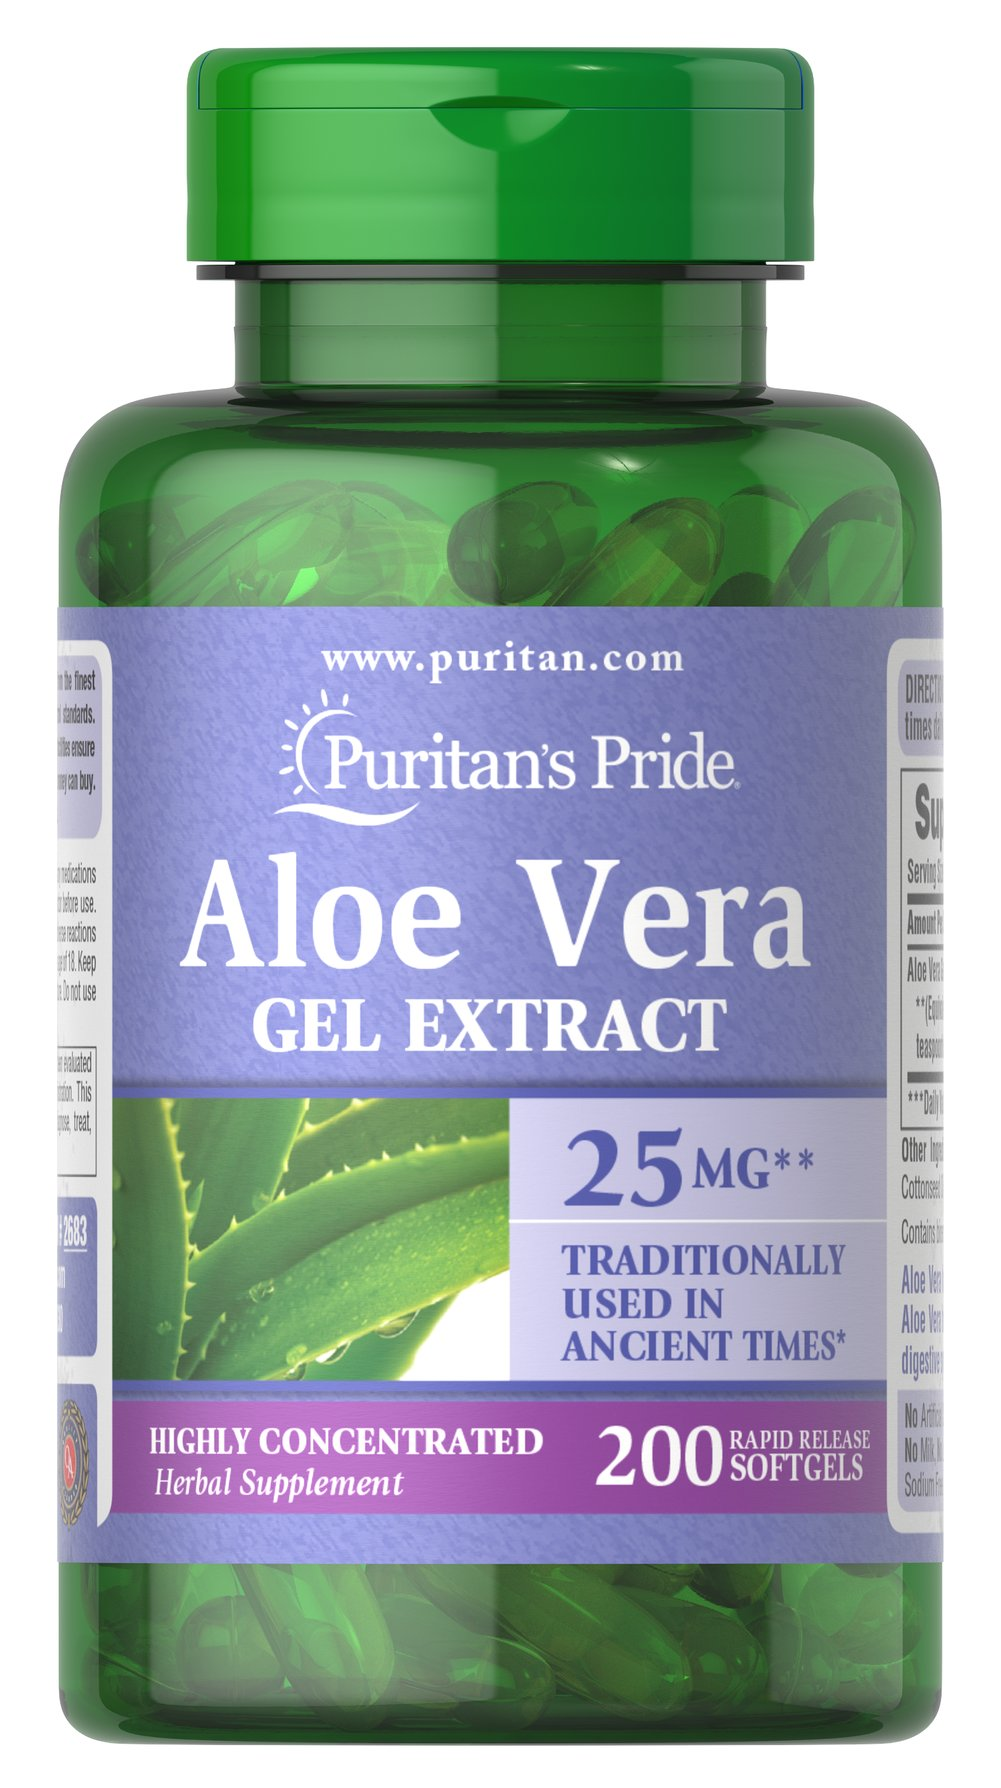 Aloe Vera Extract 25 mg <p>Serves as an aid for healthy digestion**</p><p>Plays a role in the well-being of the body**</p><p>Convenience of capsules, softgels and liquids is unsurpassed</p><p>Has been used and trusted for centuries. **</p><p>Aloe Vera contains a vast array of vitamins, minerals, amino acids, polysaccharides and phenolic compounds, and has been shown to support a healthy digestive system.**</p> 200 Softgels 25 mg $18.99